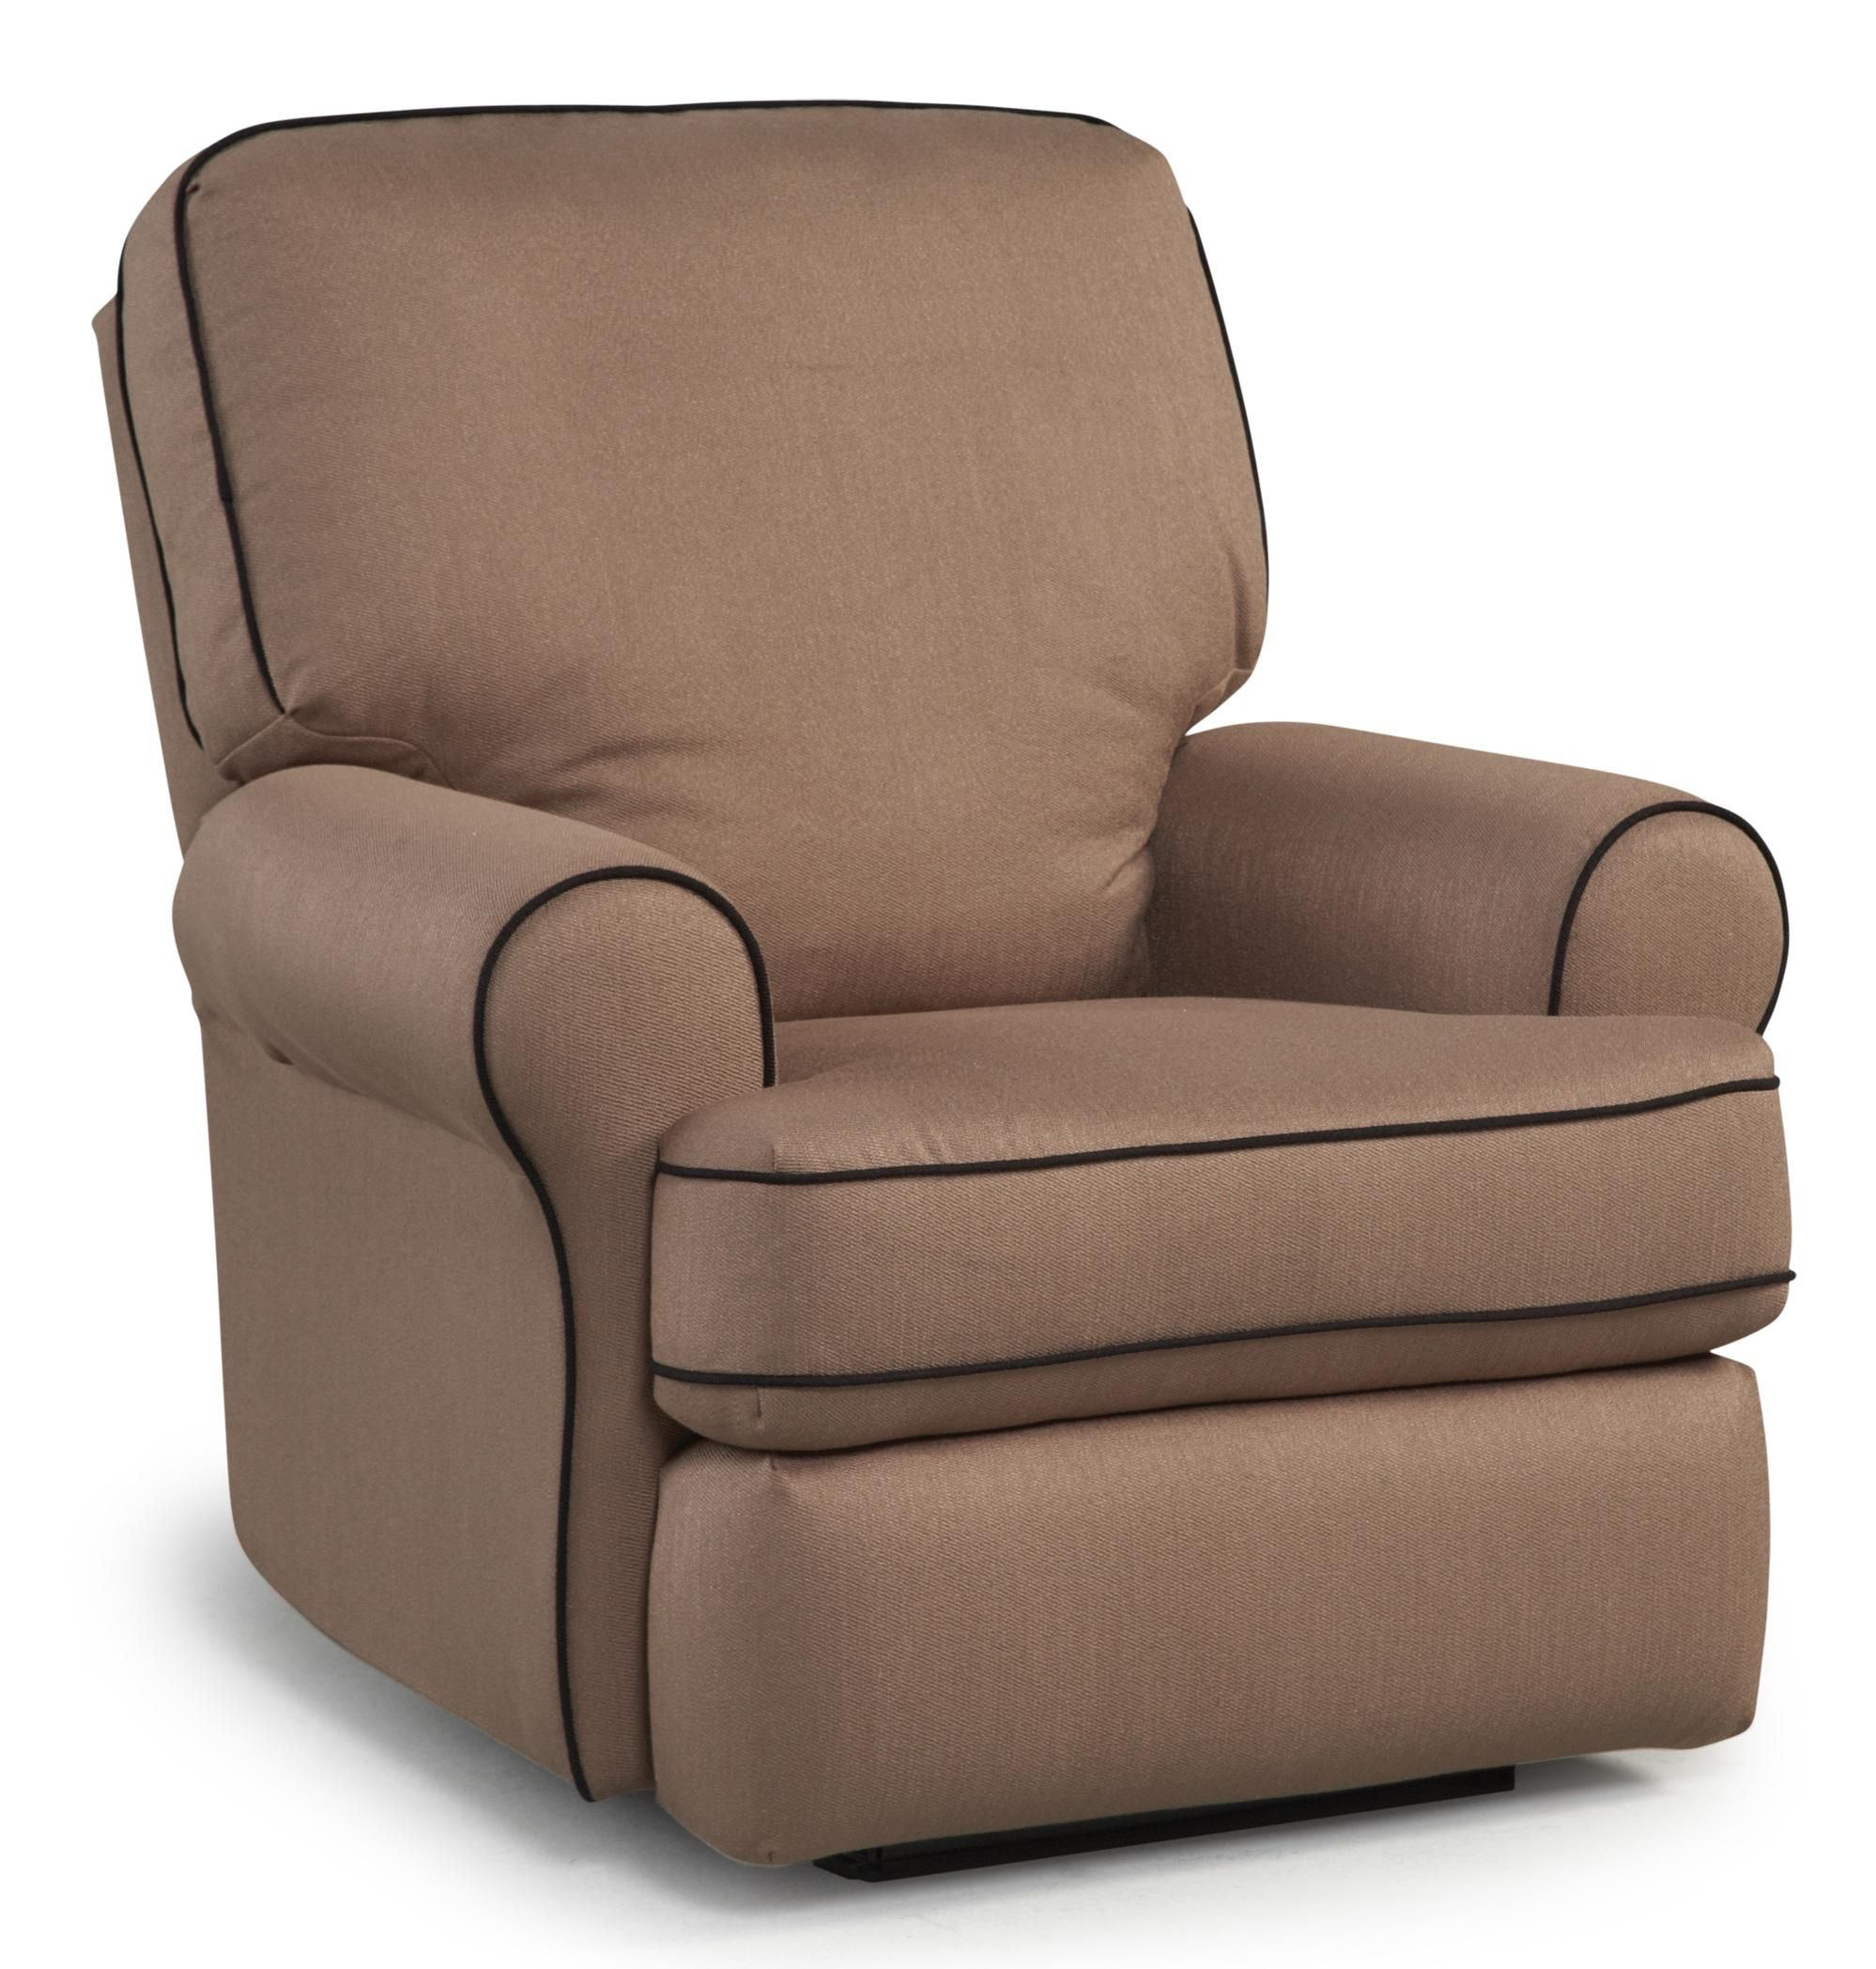 Tryp Wallhugger Recliner by Best Home Furnishings If it es in